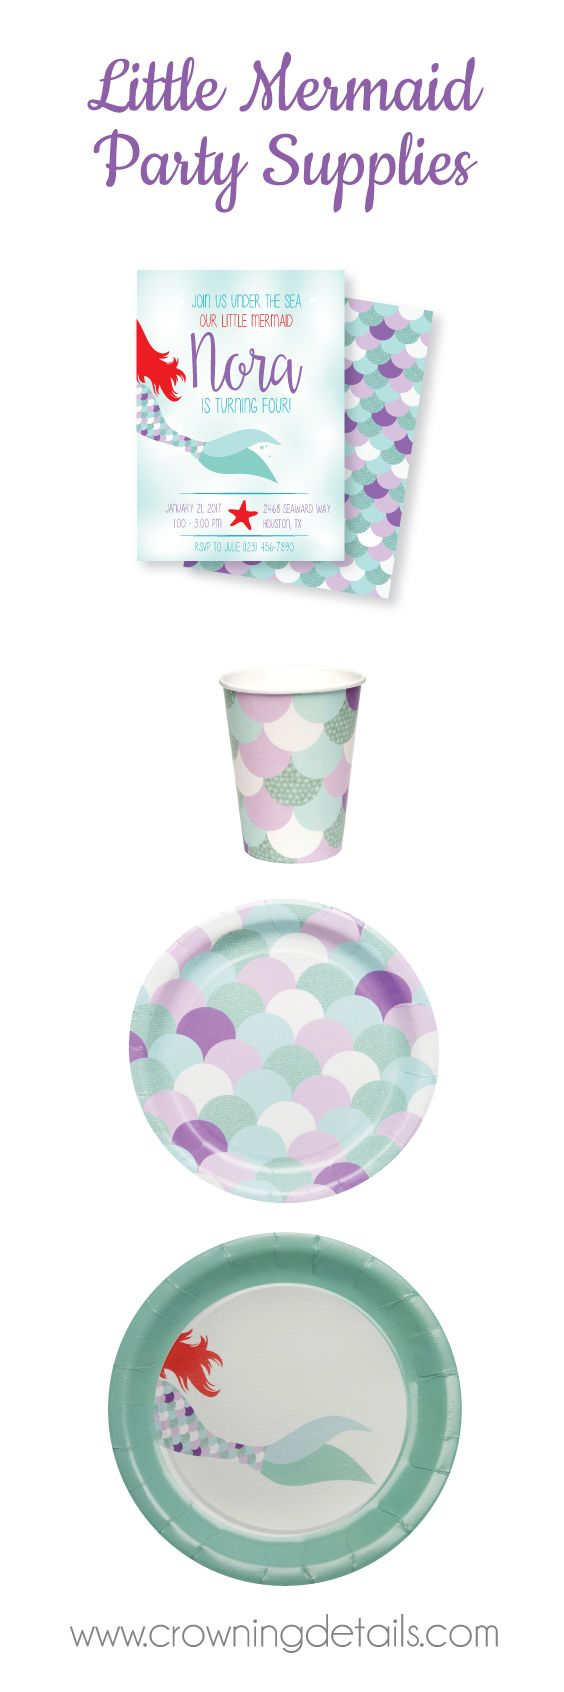 Little mermaid party supplies for your mermaid birthday party! Shop our entire collection!! Mermaid paper plates